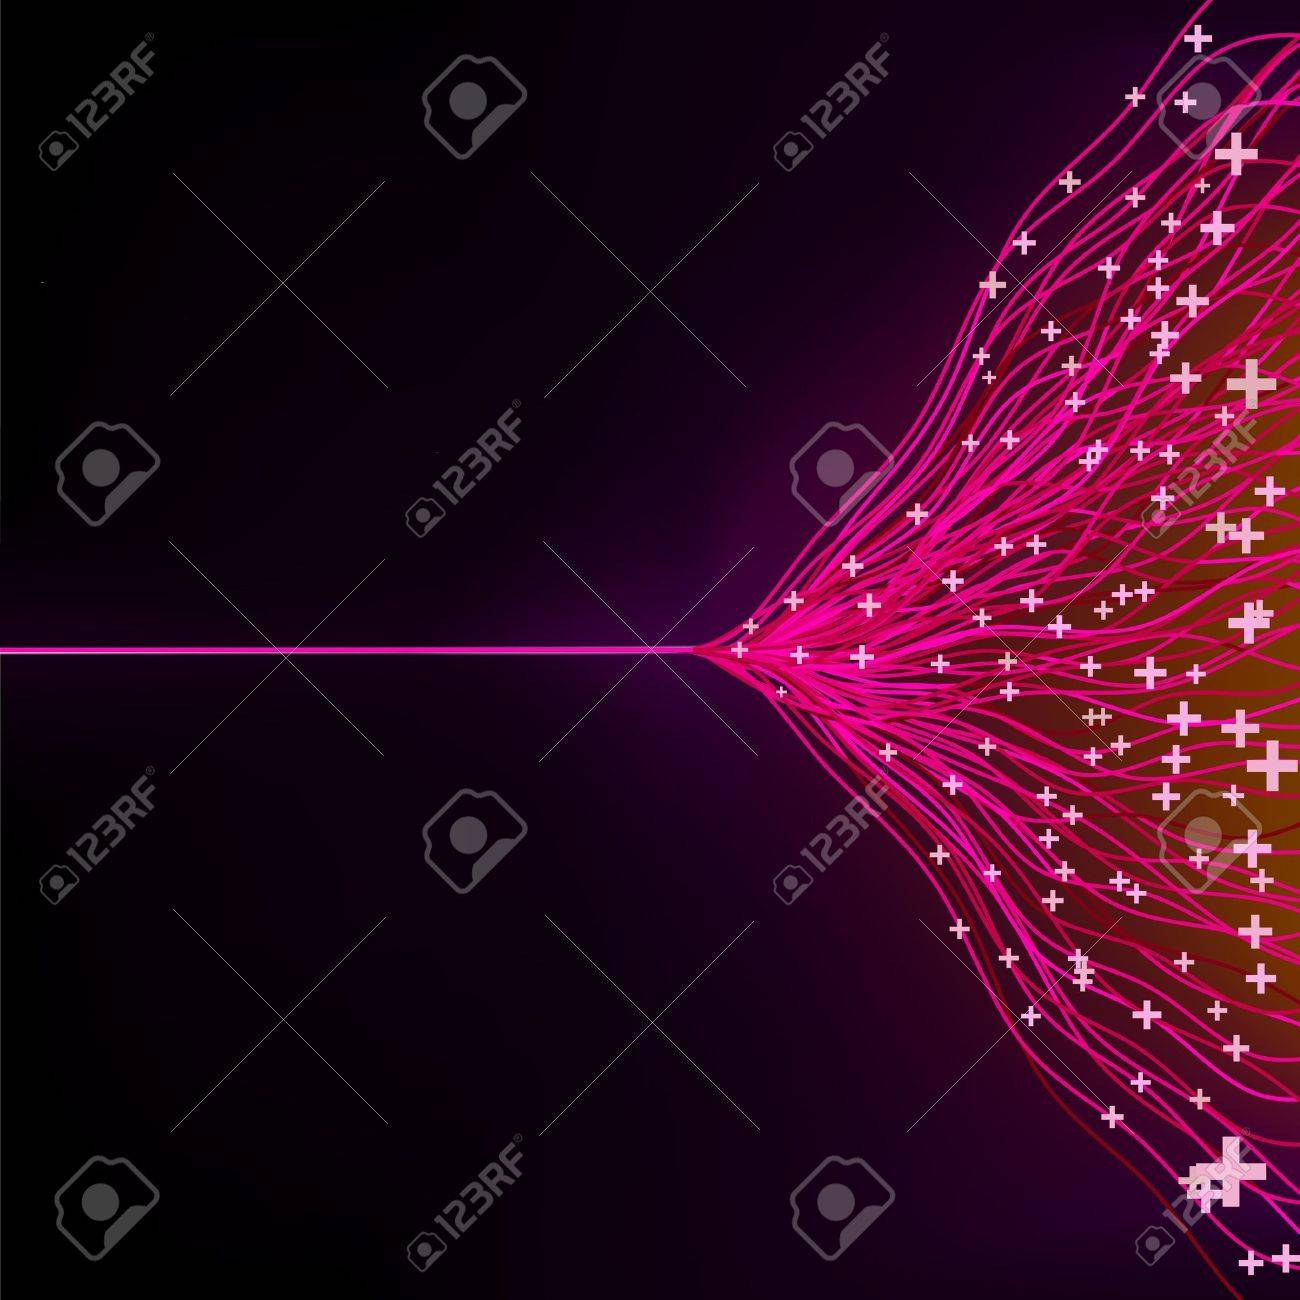 Futuristic abstract glowing background resembling motion blurred neon light curves Stock Vector - 12489829